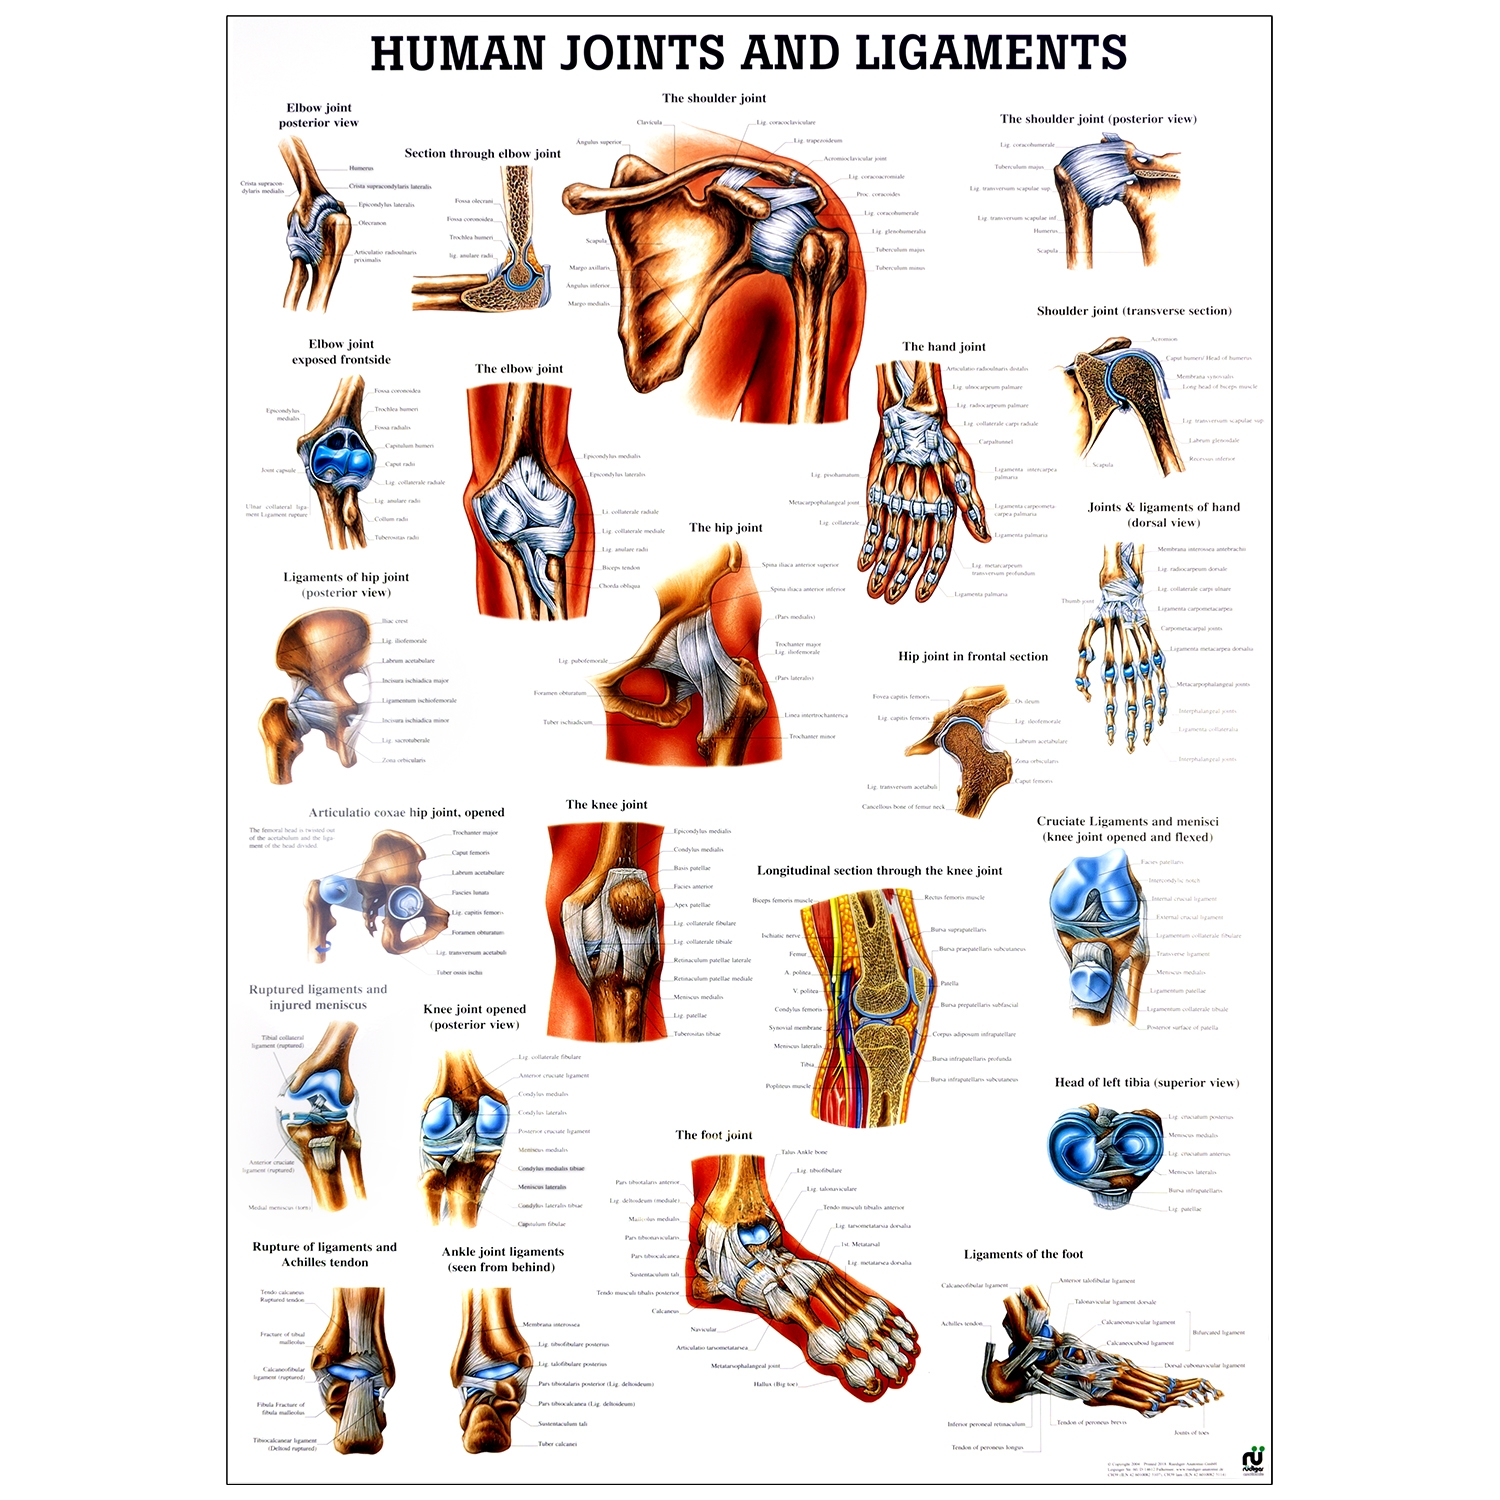 Poster human joints and ligaments - gelamineerd  - 70 x 100 cm